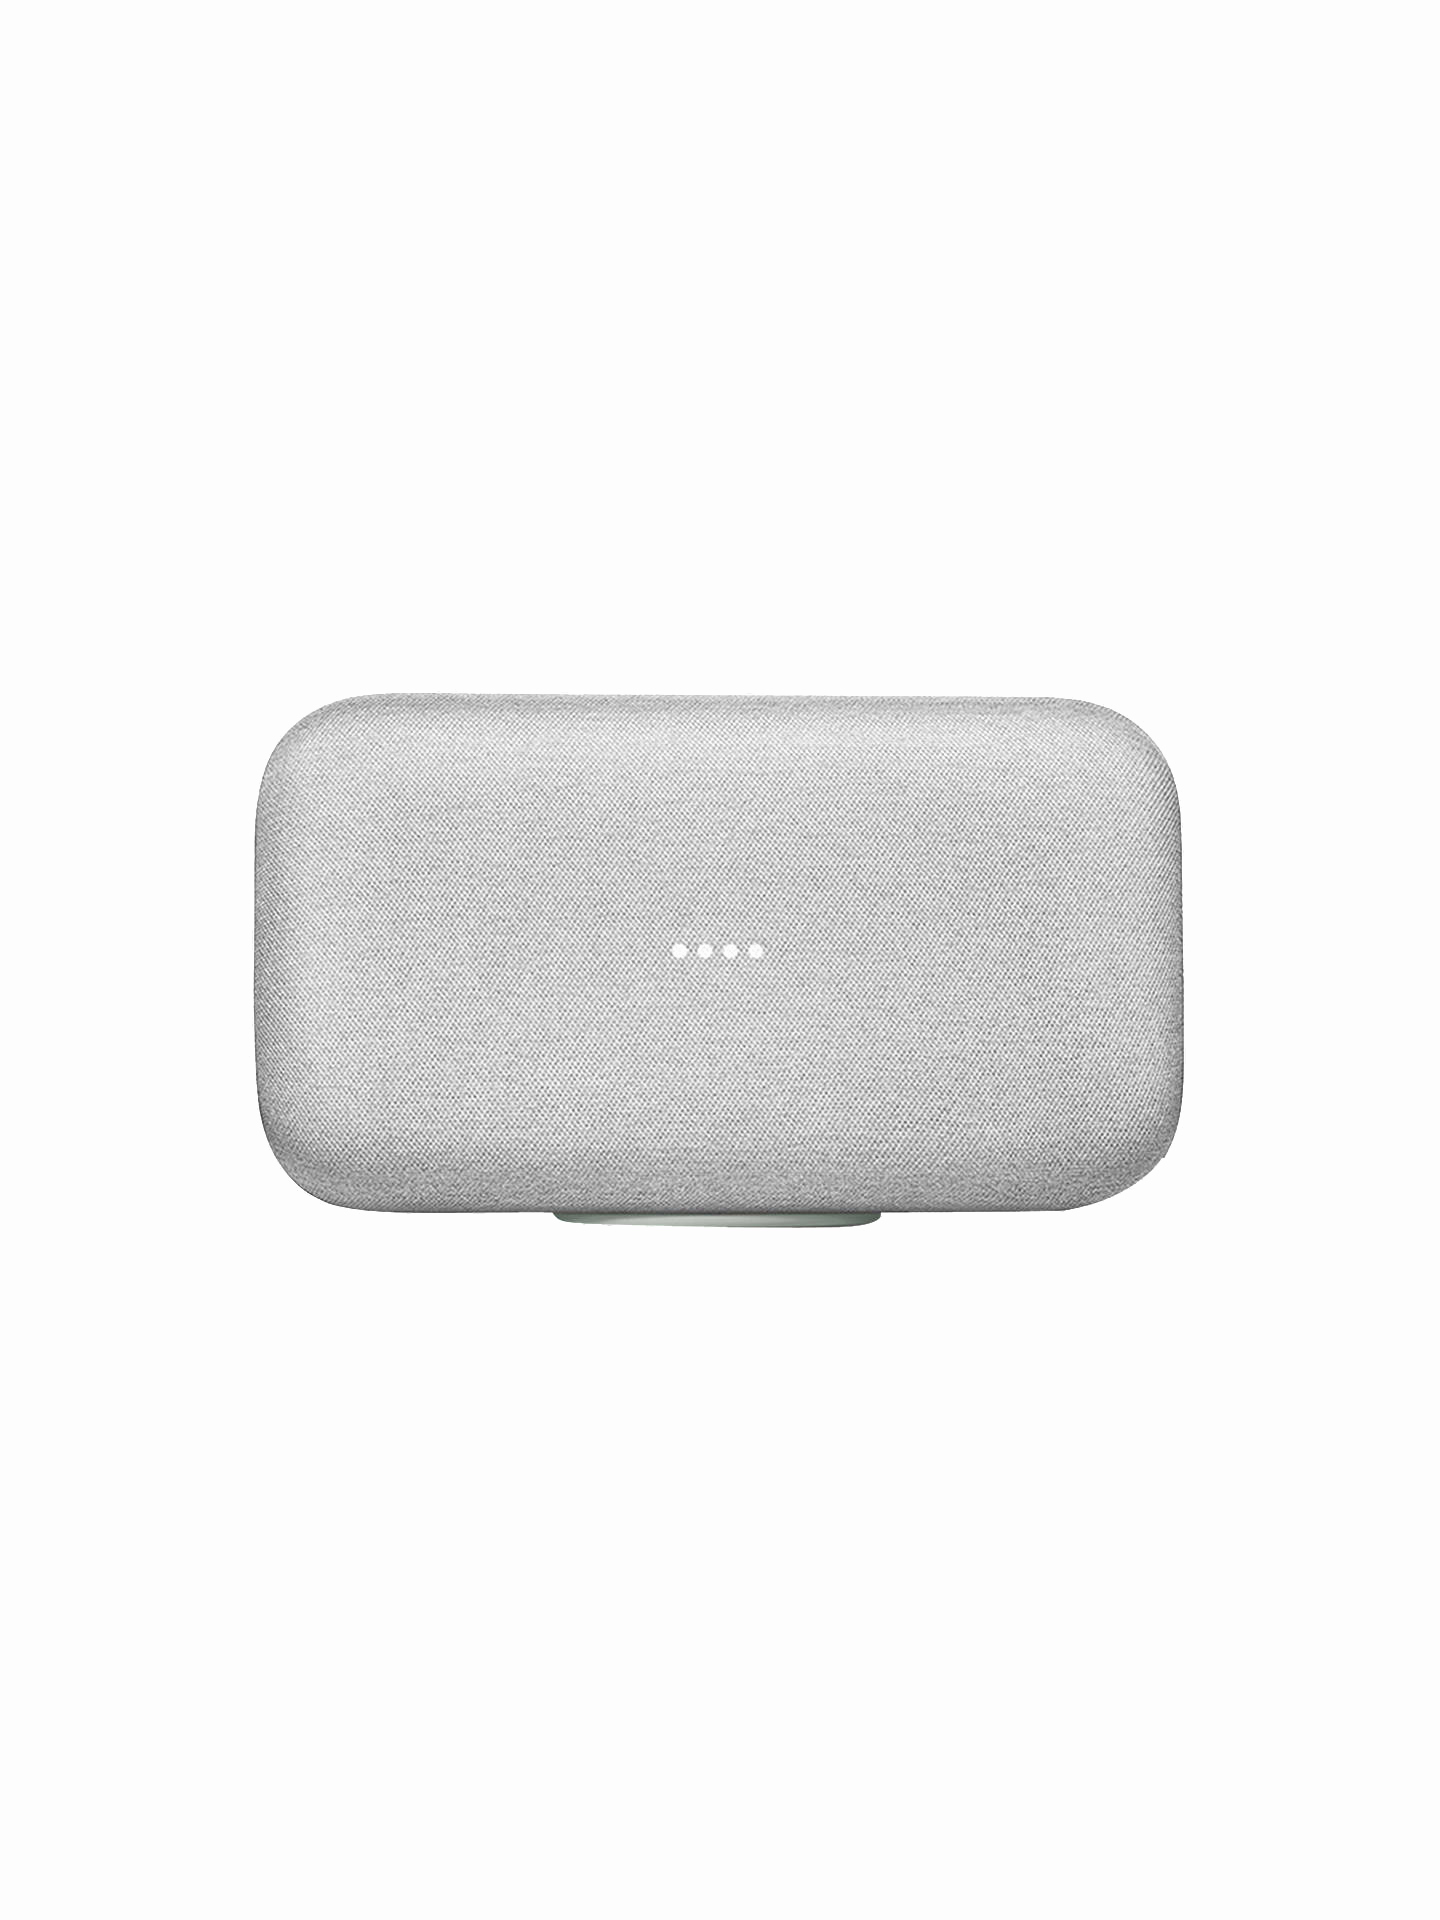 Holmes Place Preise Inspirierend Google Home Max Hands Free Smart Speaker at John Lewis & Partners